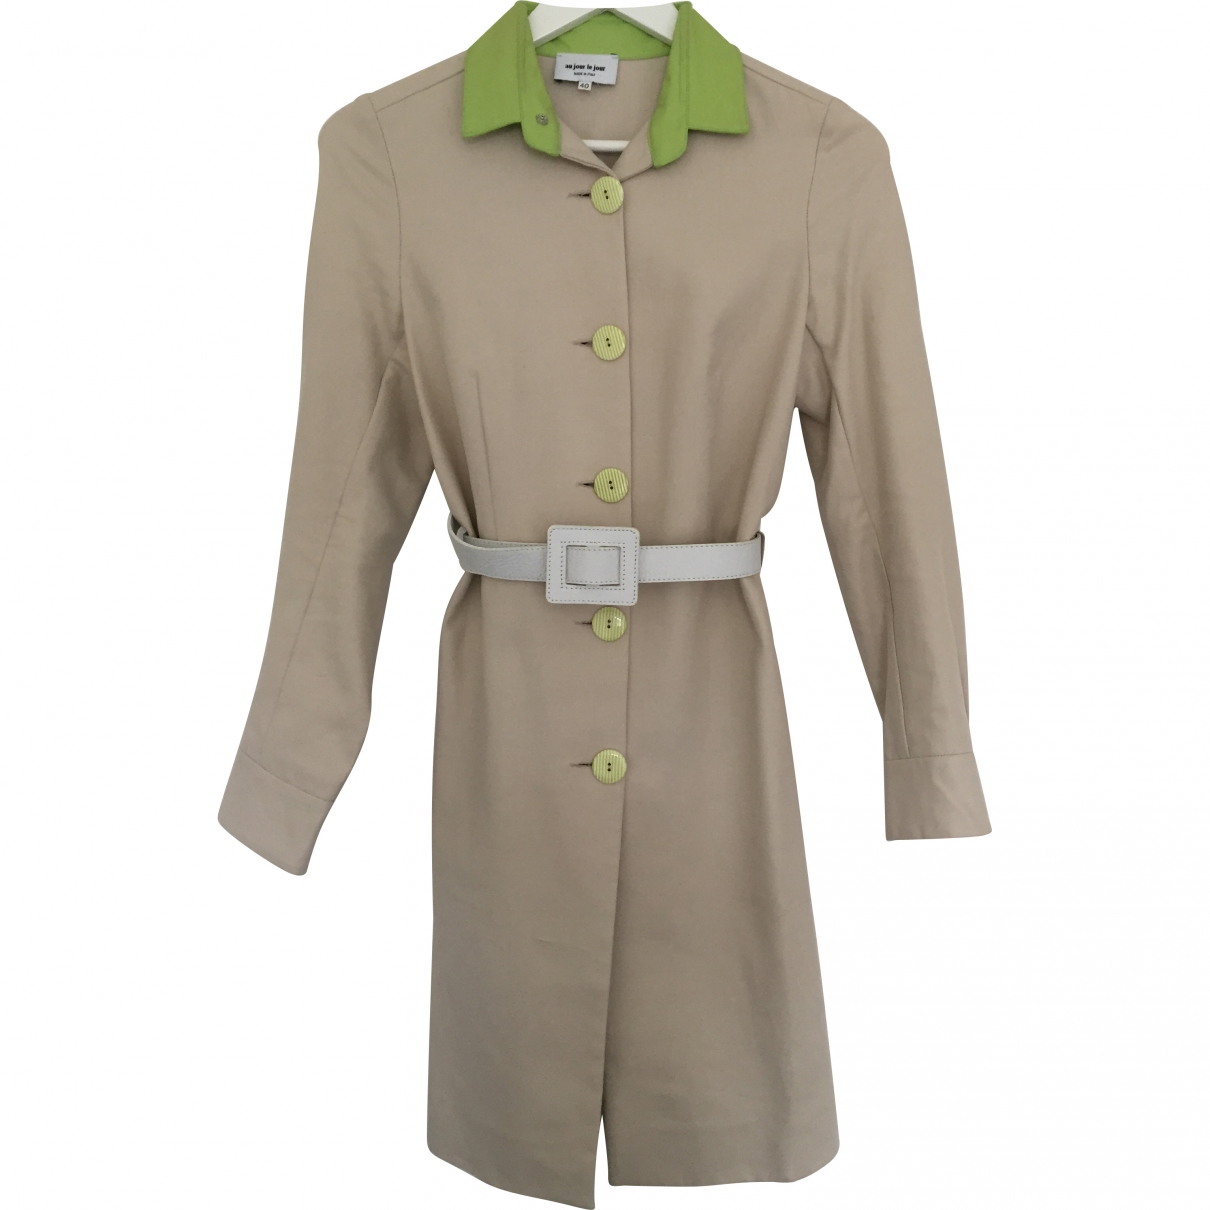 Au Jour Le Jour \N Beige Cotton coat for Women 40 IT